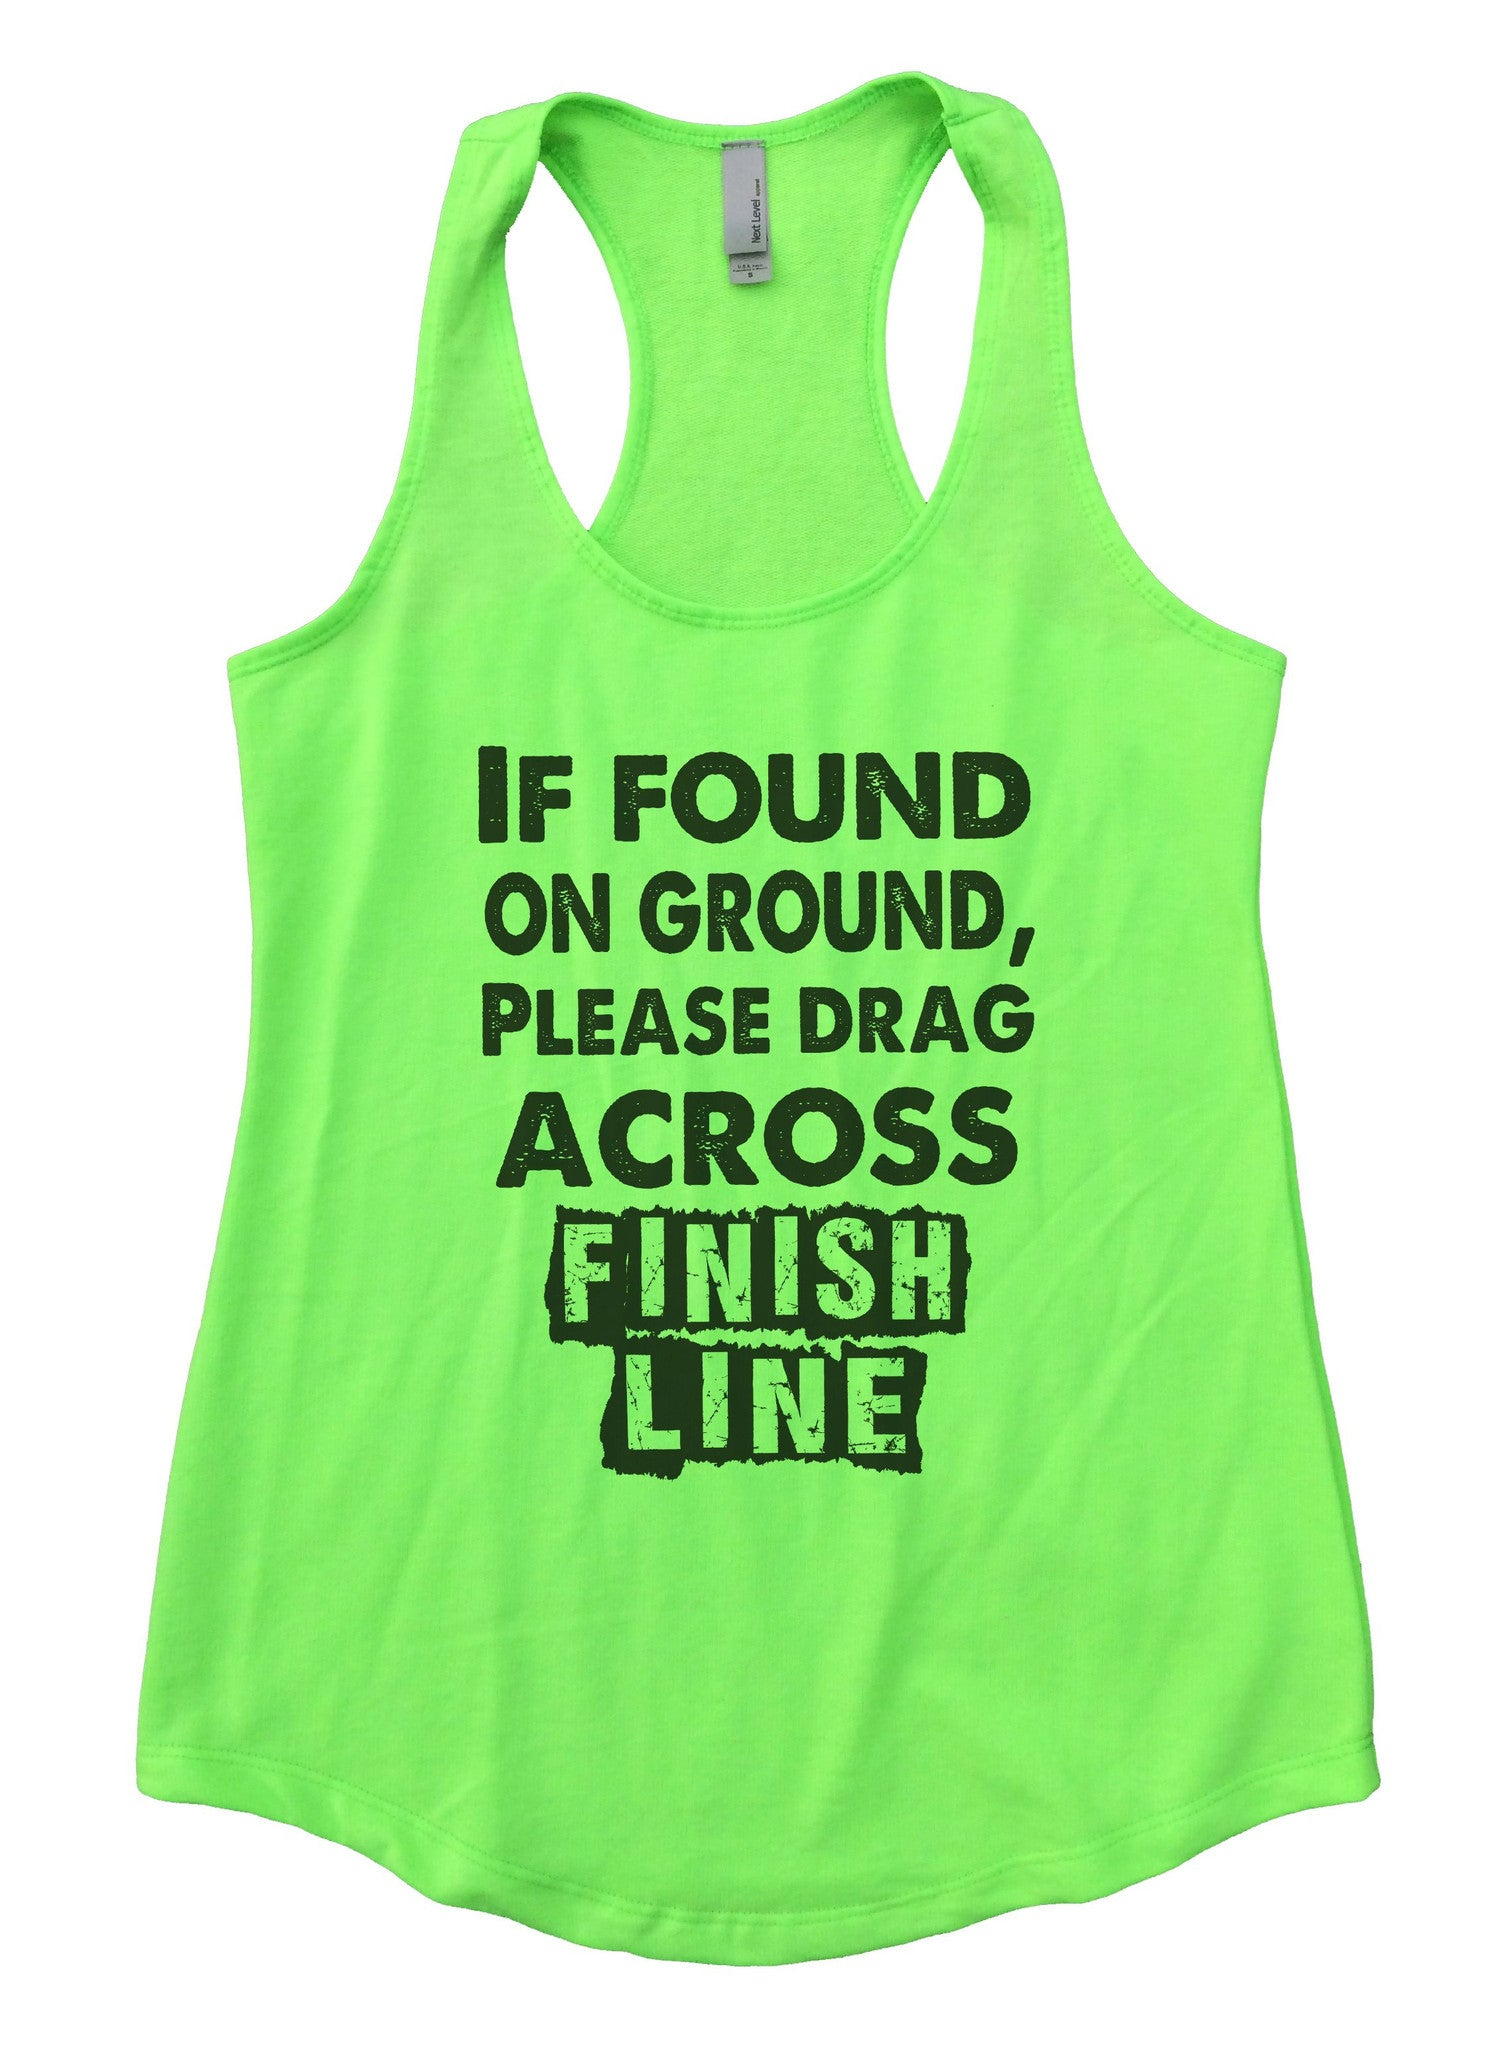 If Found On Ground, Please Drag Across Finish Line Womens Workout Tank Top F667 - Funny Shirts Tank Tops Burnouts and Triblends  - 6